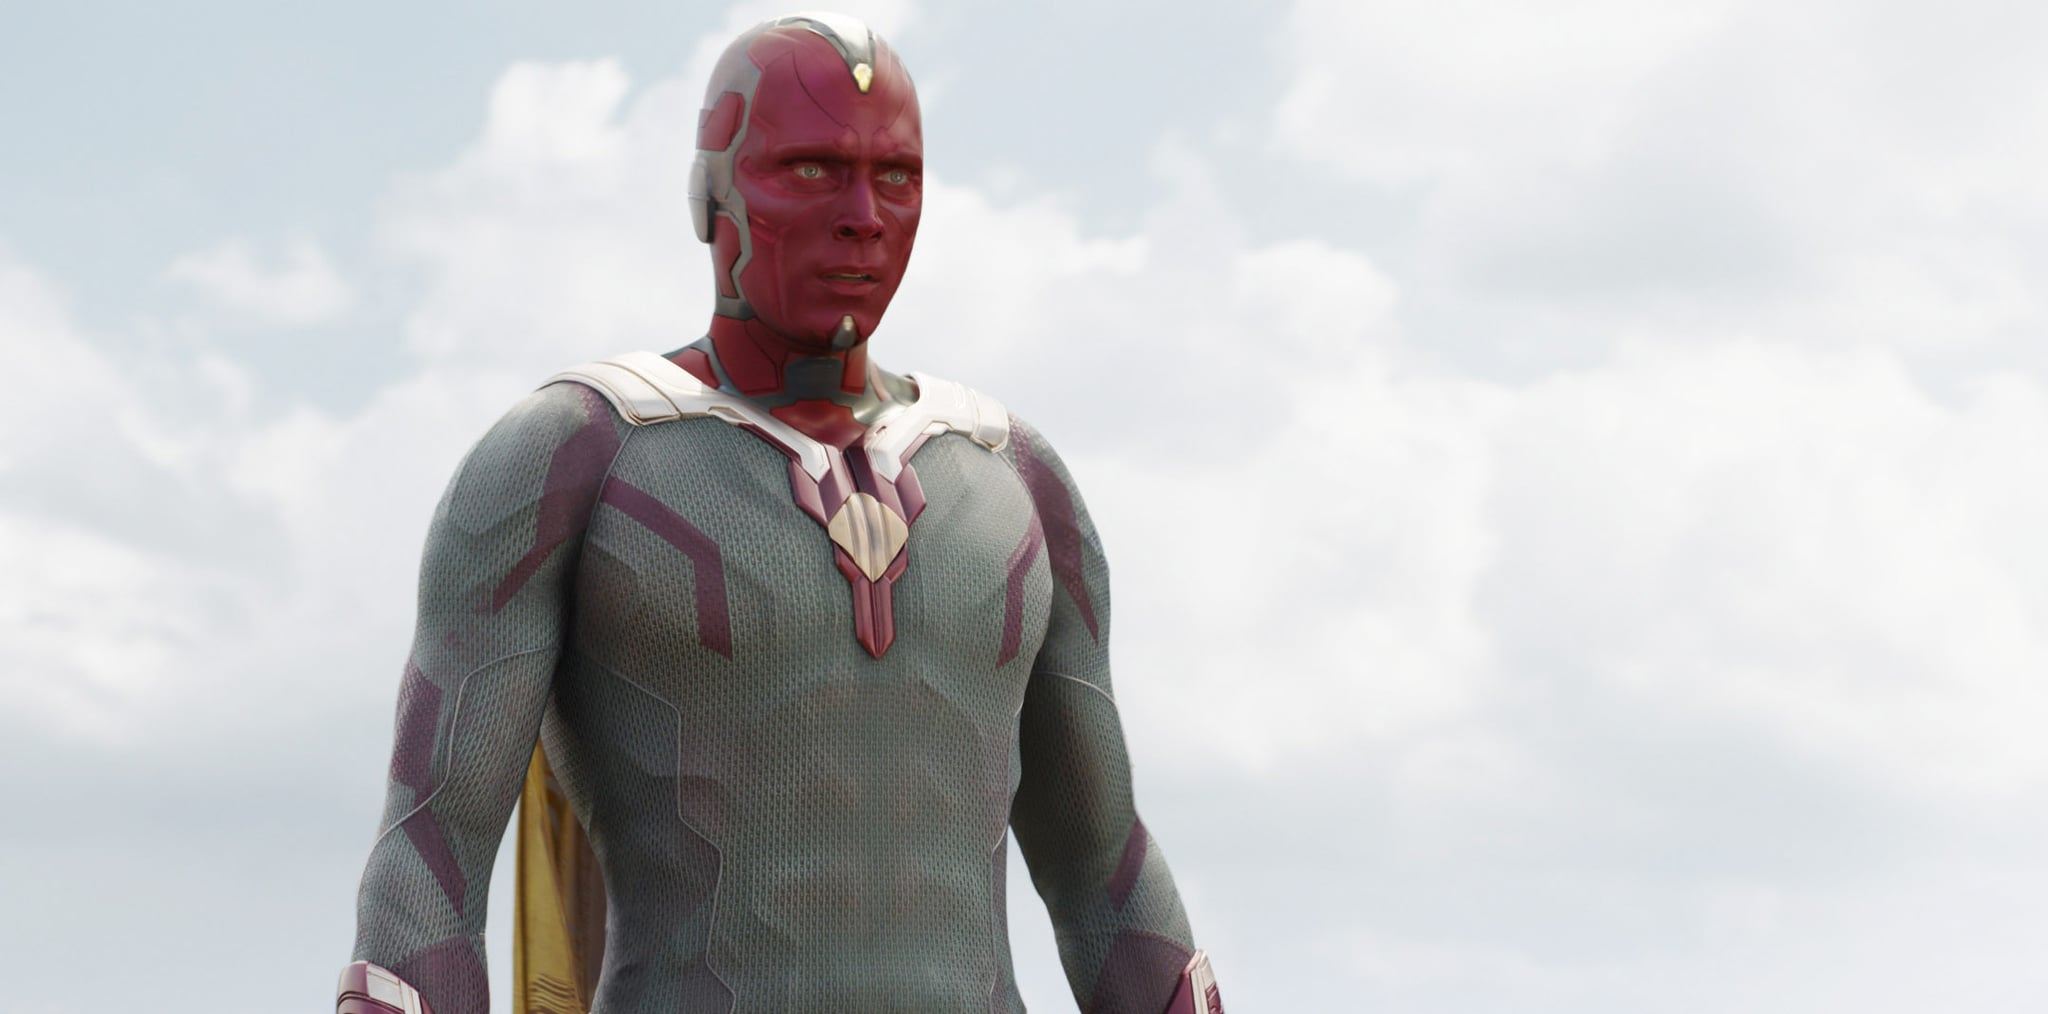 CAPTAIN AMERICA: CIVIL WAR, Paul Bettany, as Vision, 2016. / TM &  2016 Marvel. All rights reserved. /  Walt Disney Studios Motion Pictures / courtesy Everett Collection